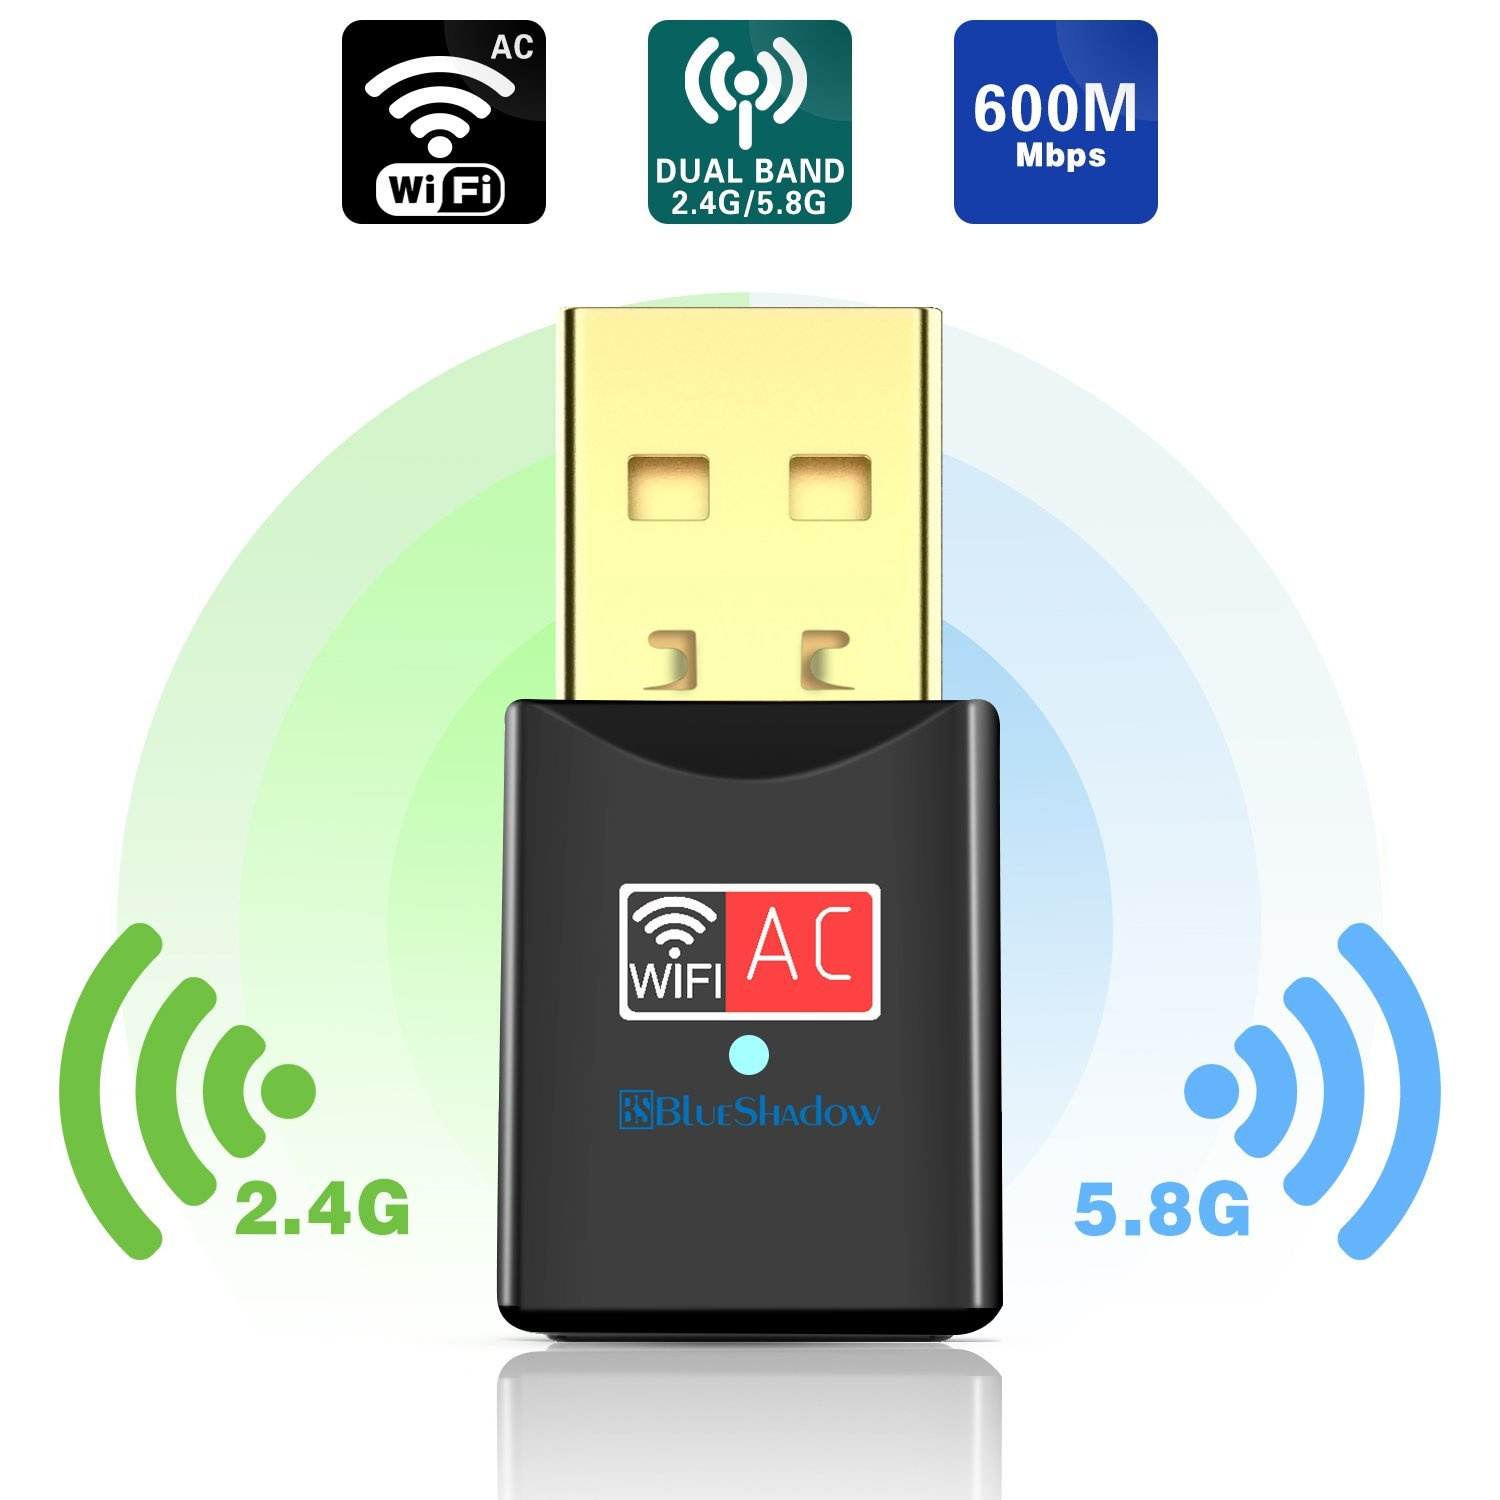 Blueshadow USB Wifi Adapter - Dual Band 2.4G/5G Mini Wi-fi ac Wireless Network Card Dongle with High Gain Antenna For Desktop Laptop PC Support Windows XP Vista/7/8/8.1/10 (USB Wifi 600Mbps) by Blueshadow